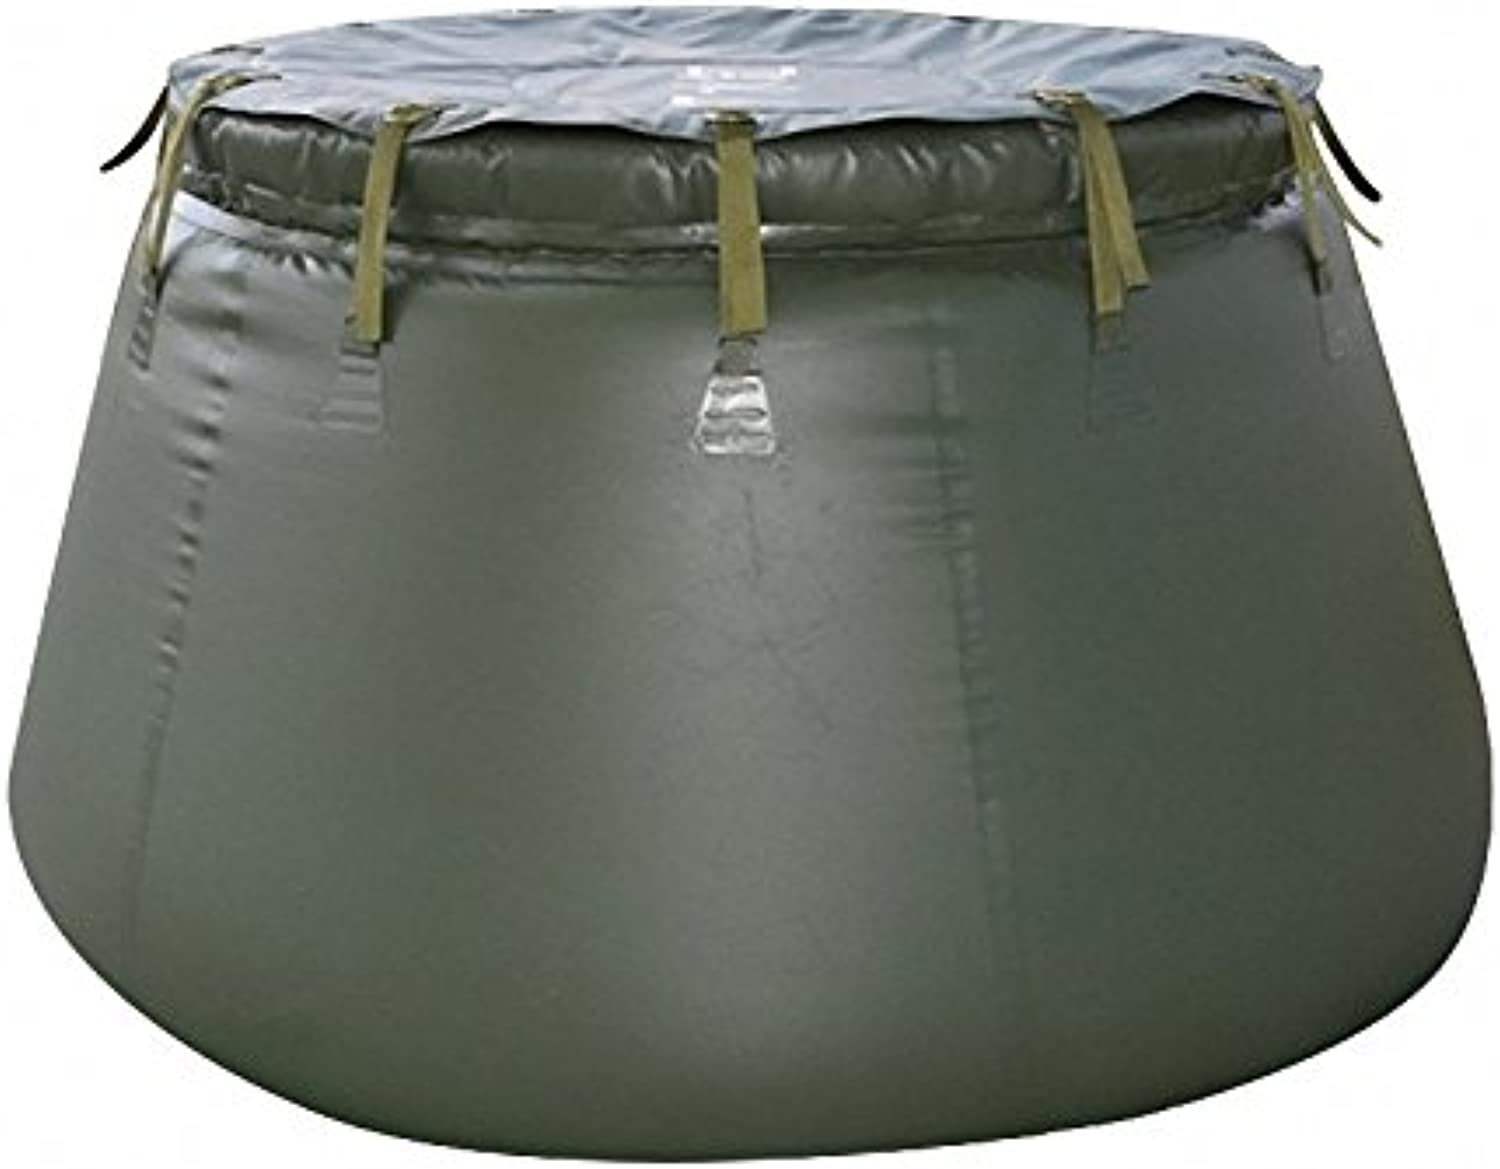 Foldable TPU Water Storage Tank in Green color for Agriculture and Industry, 1000 L (About 264 Gallon) Storage Capacity 2000 L (528 Gallon) Storage Capacity